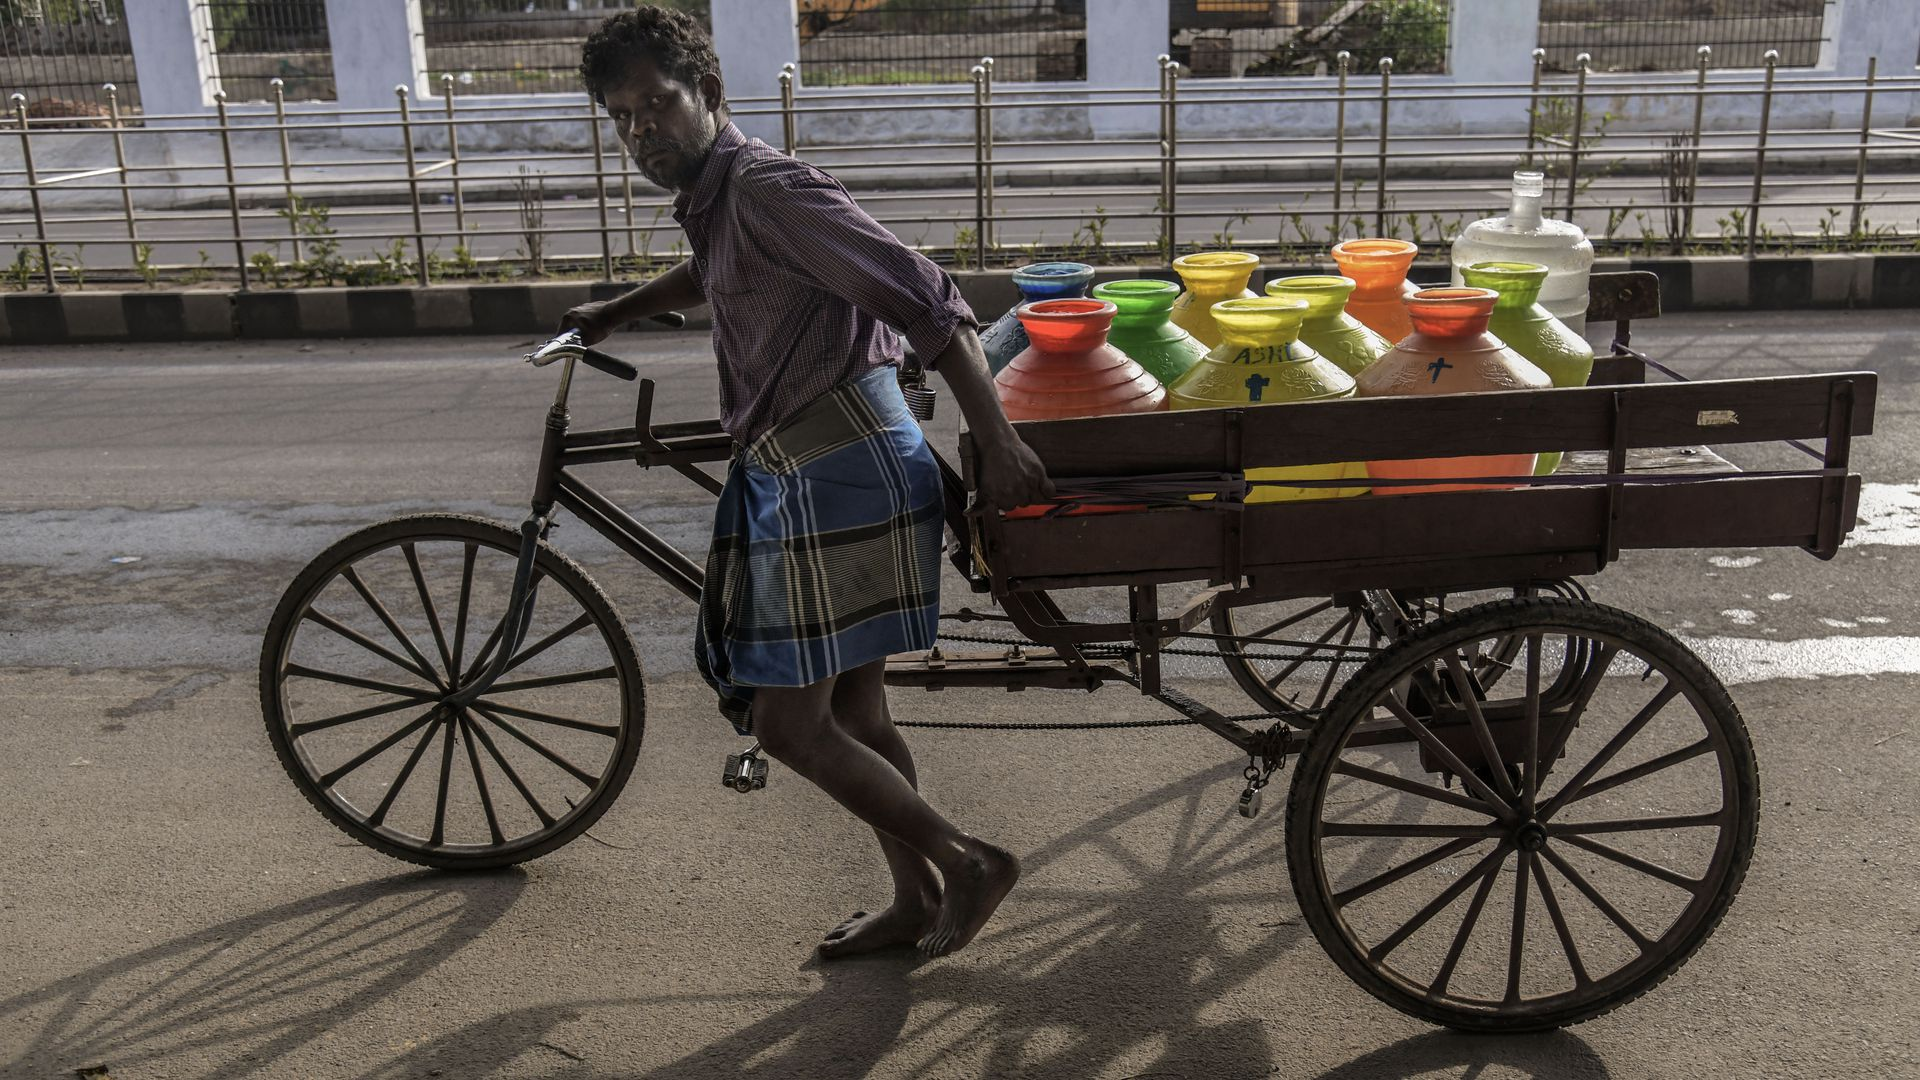 bicyclist transporting colored water cans